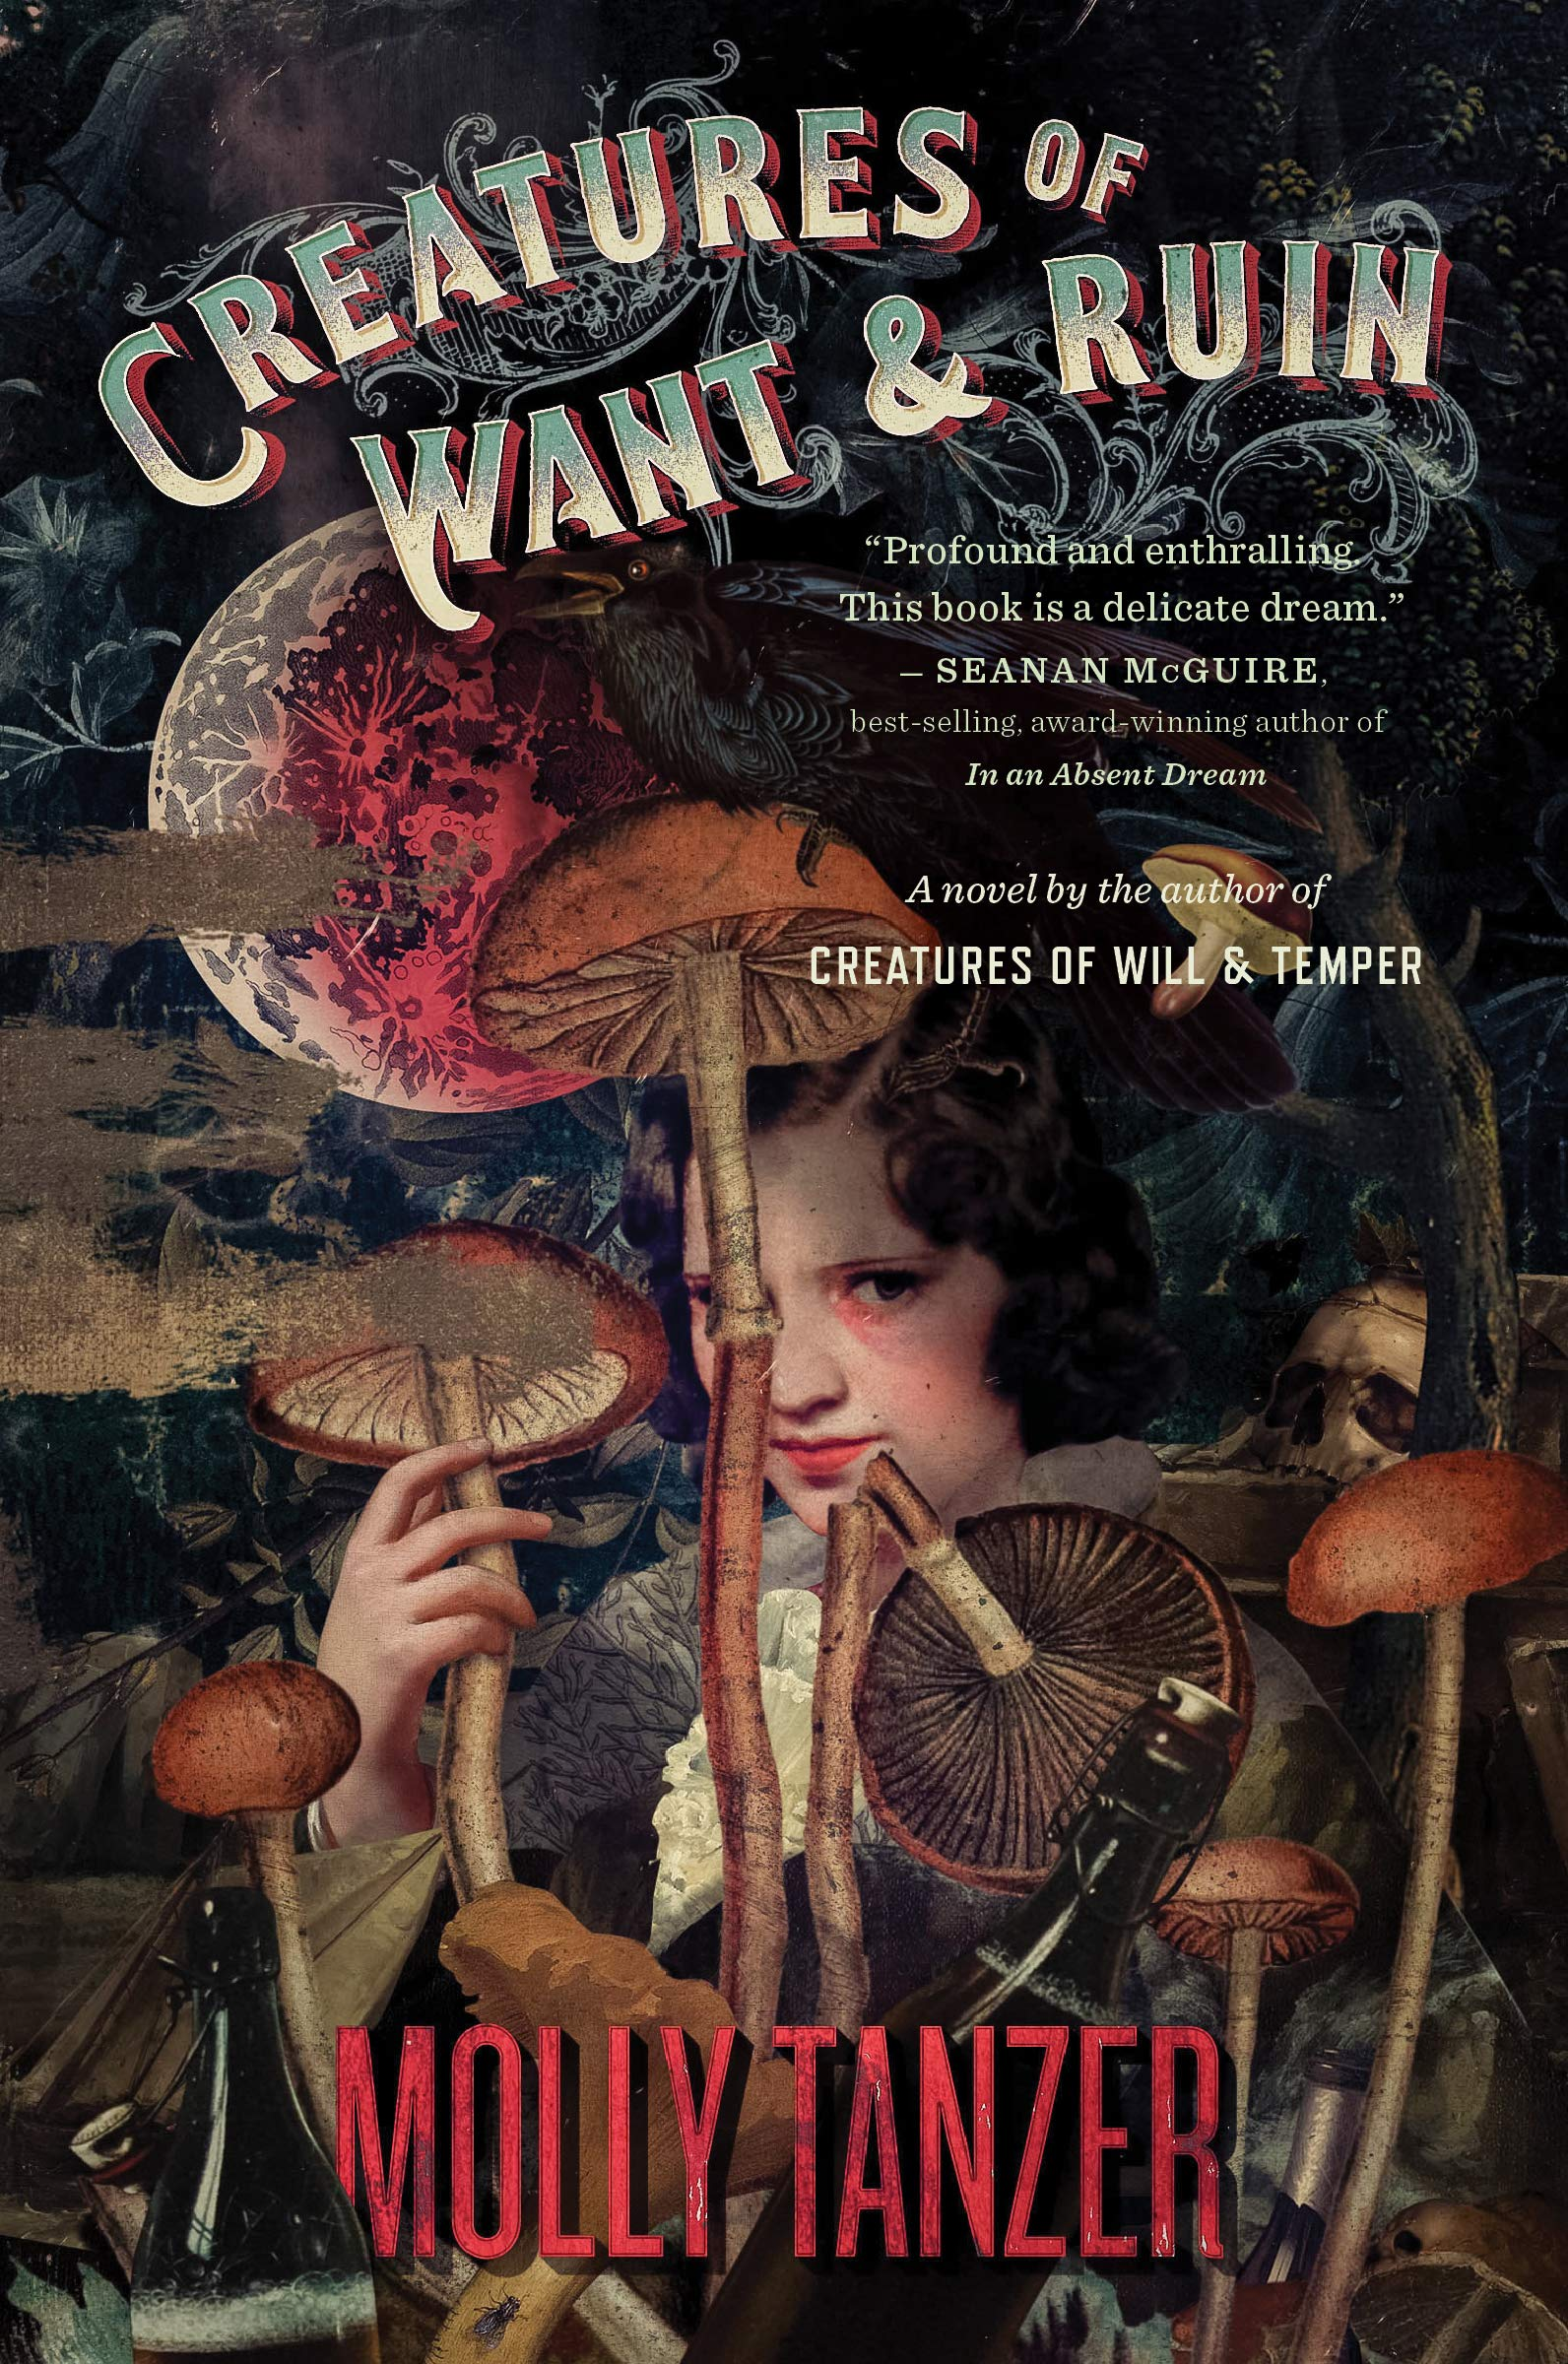 Molly Tanzer: Five Things I Learned Writing Creatures of Want and Ruin